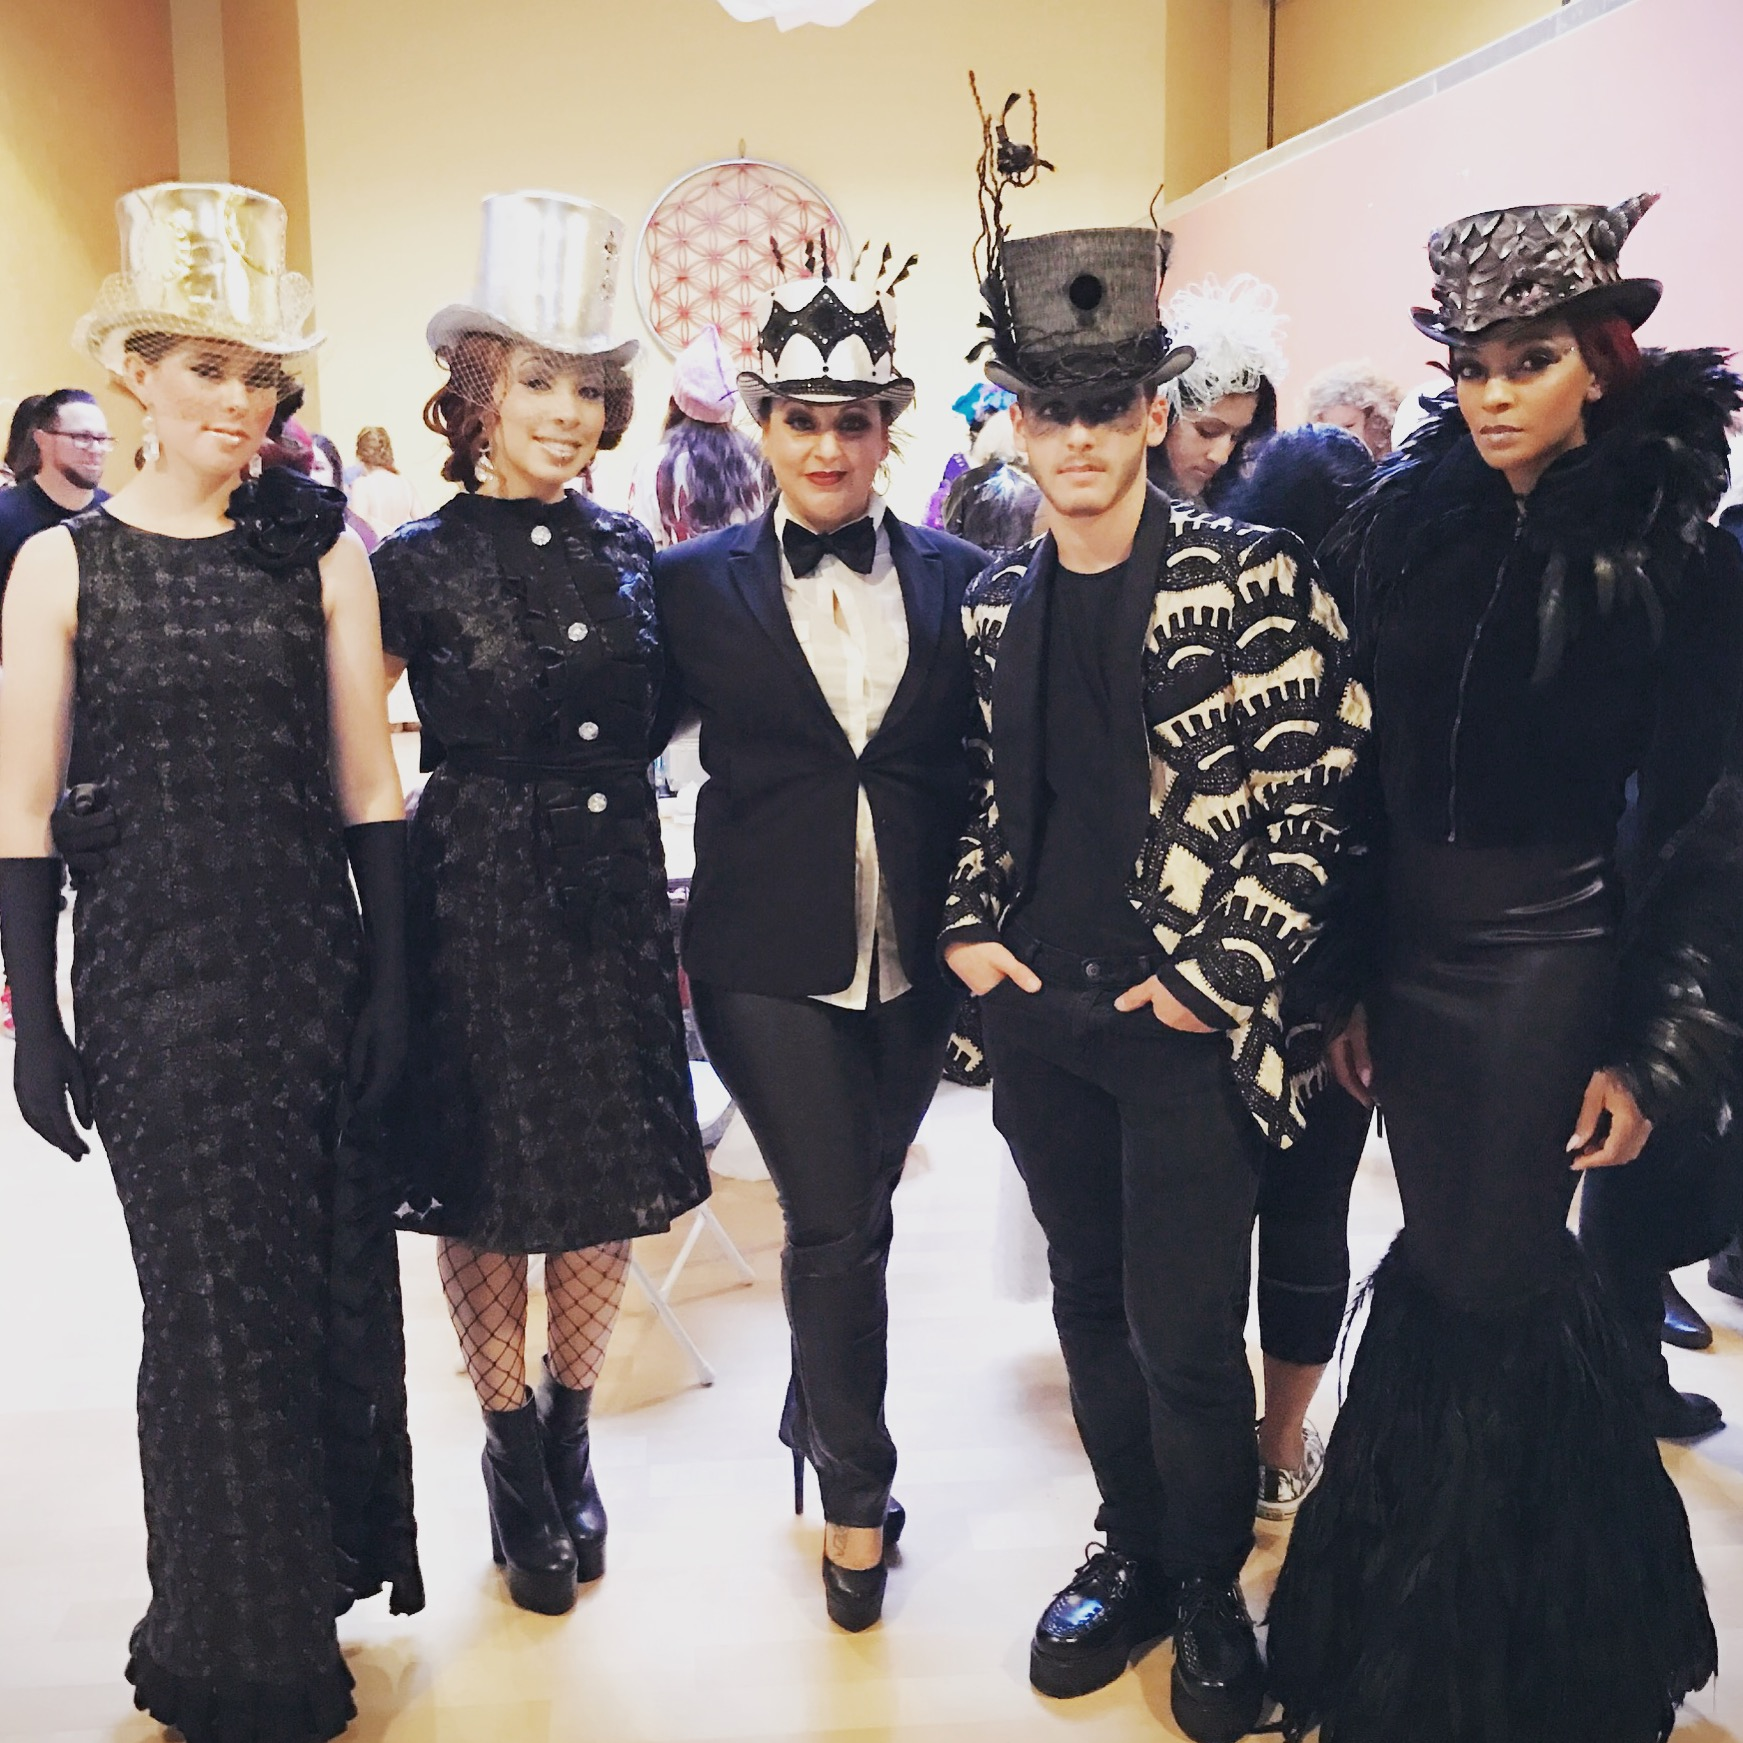 Couture Hats for Pivot: The Art of Fashion Runway